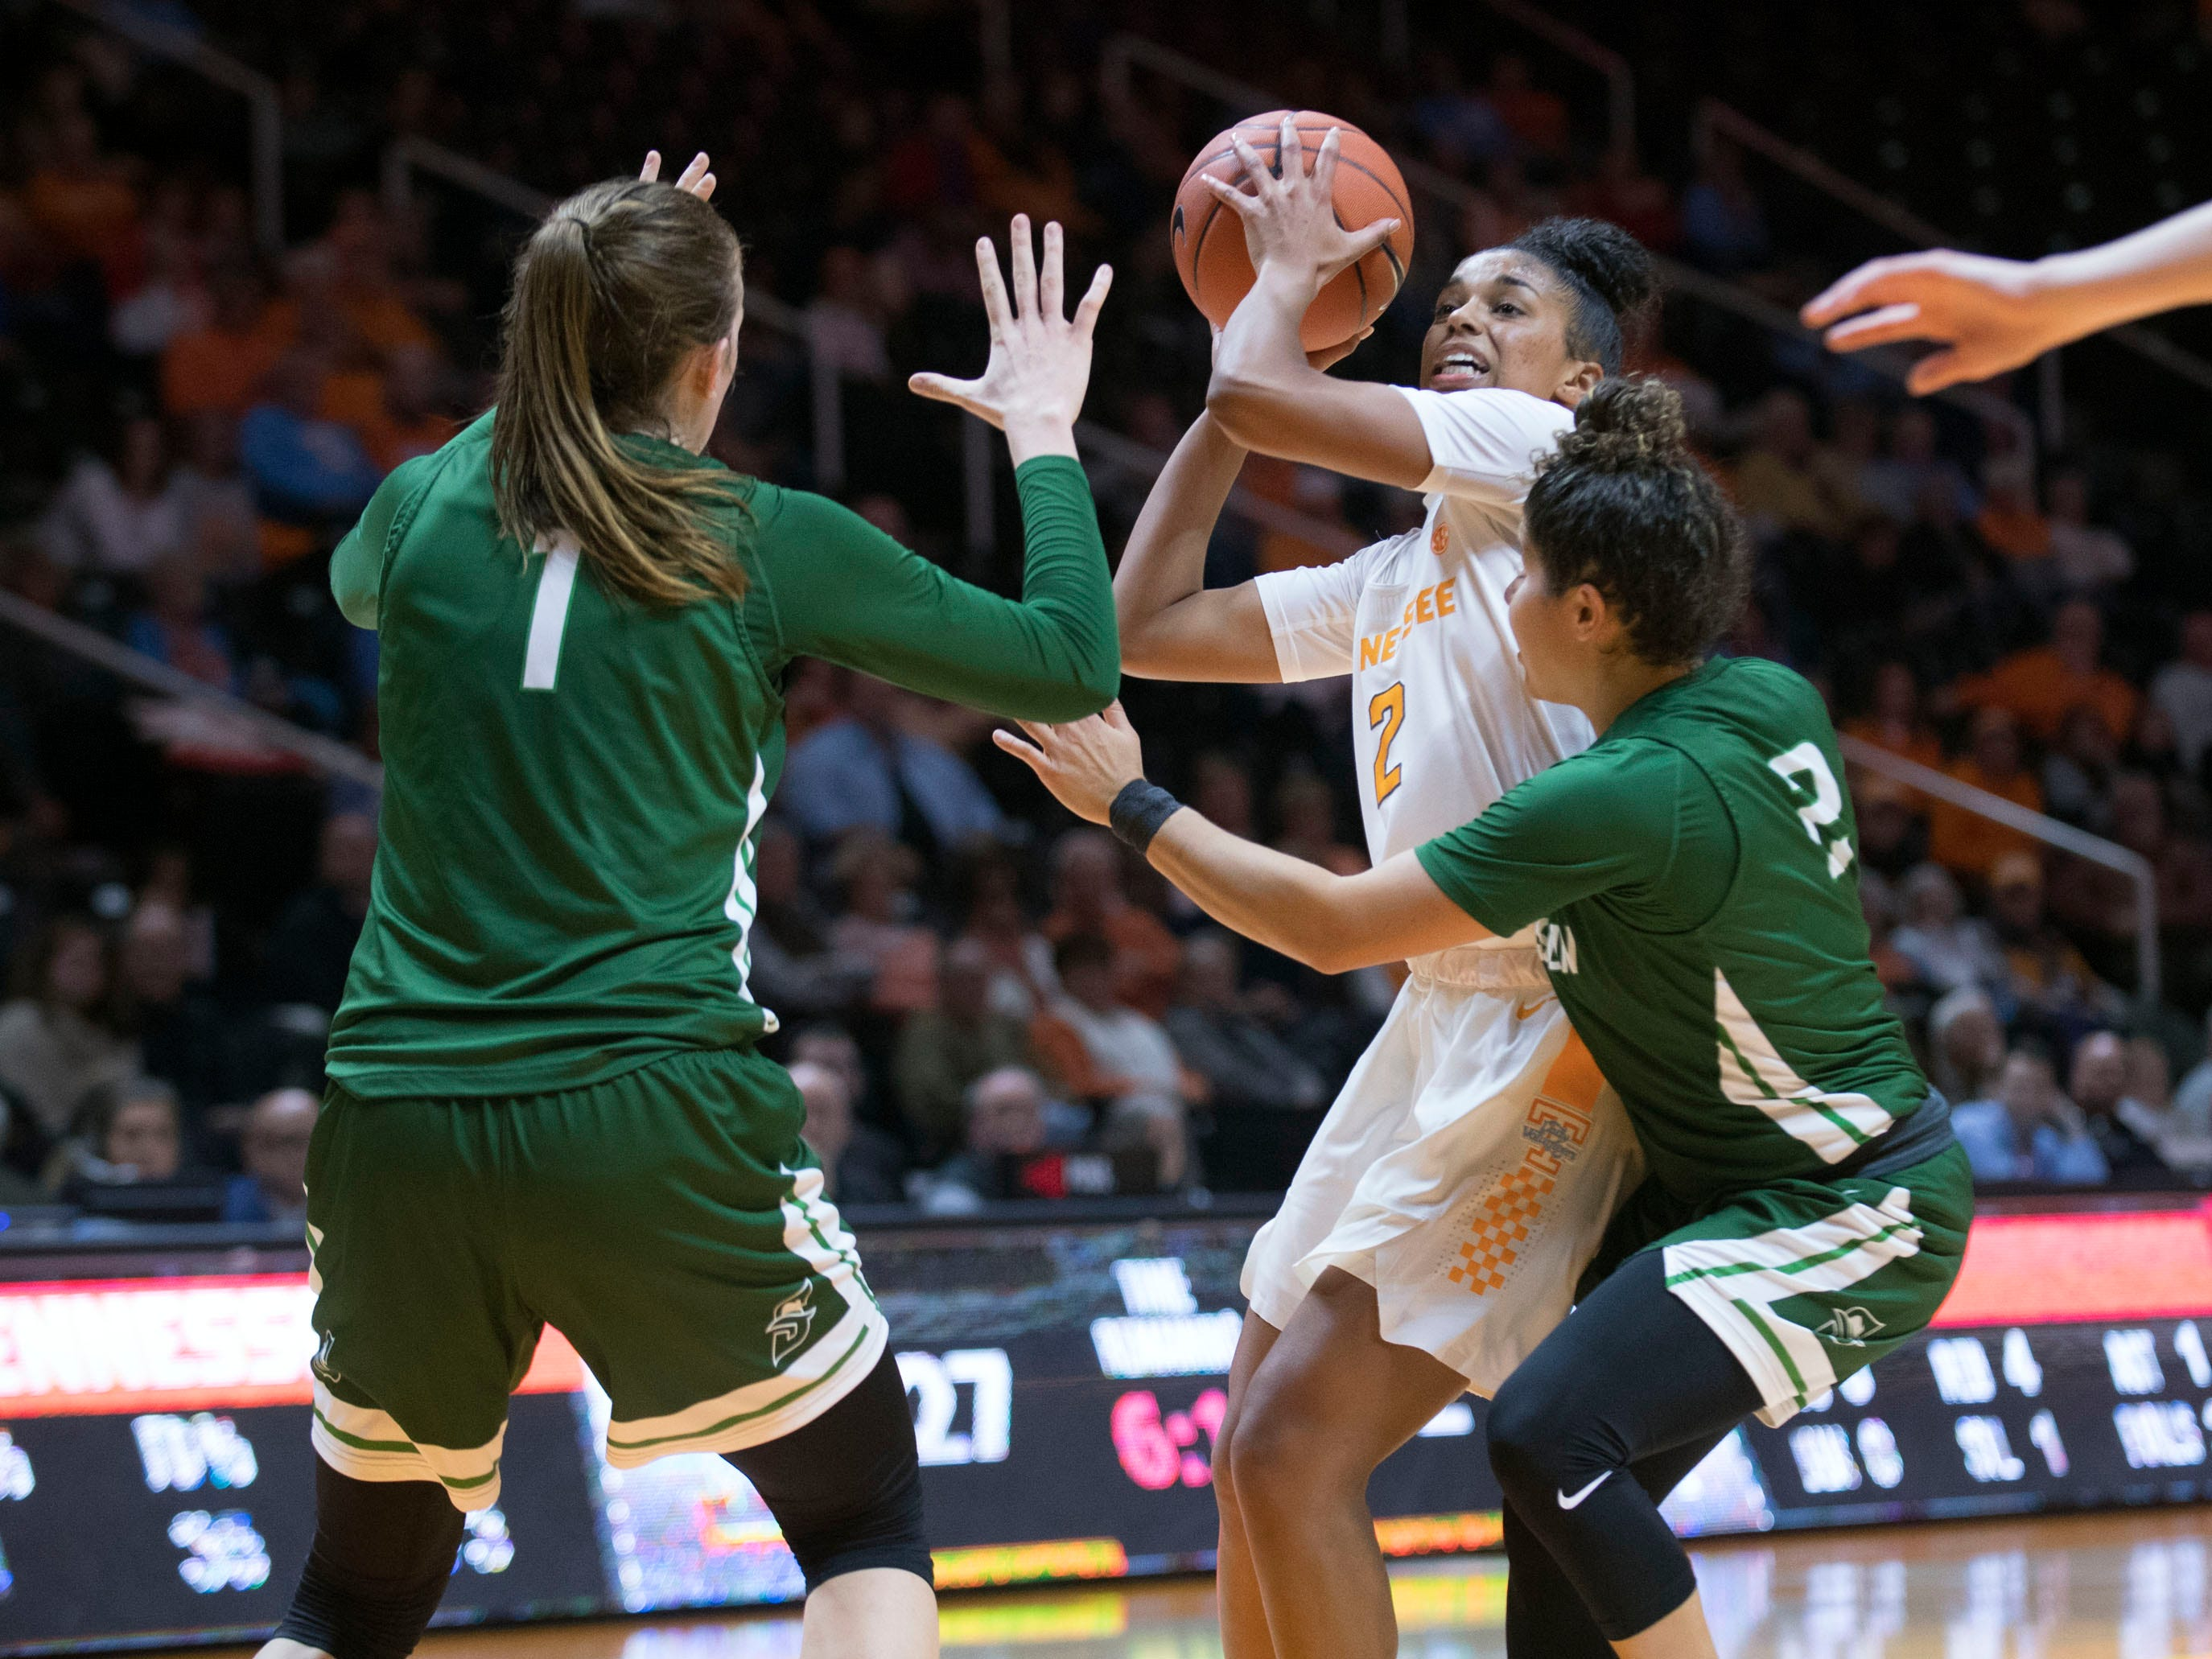 Tennessee's Evina Westbrook (2) attempts to score while defended by Stetson's Sarah Sagerer (1) and McKenna Beach (2) on Wednesday, December 5, 2018.